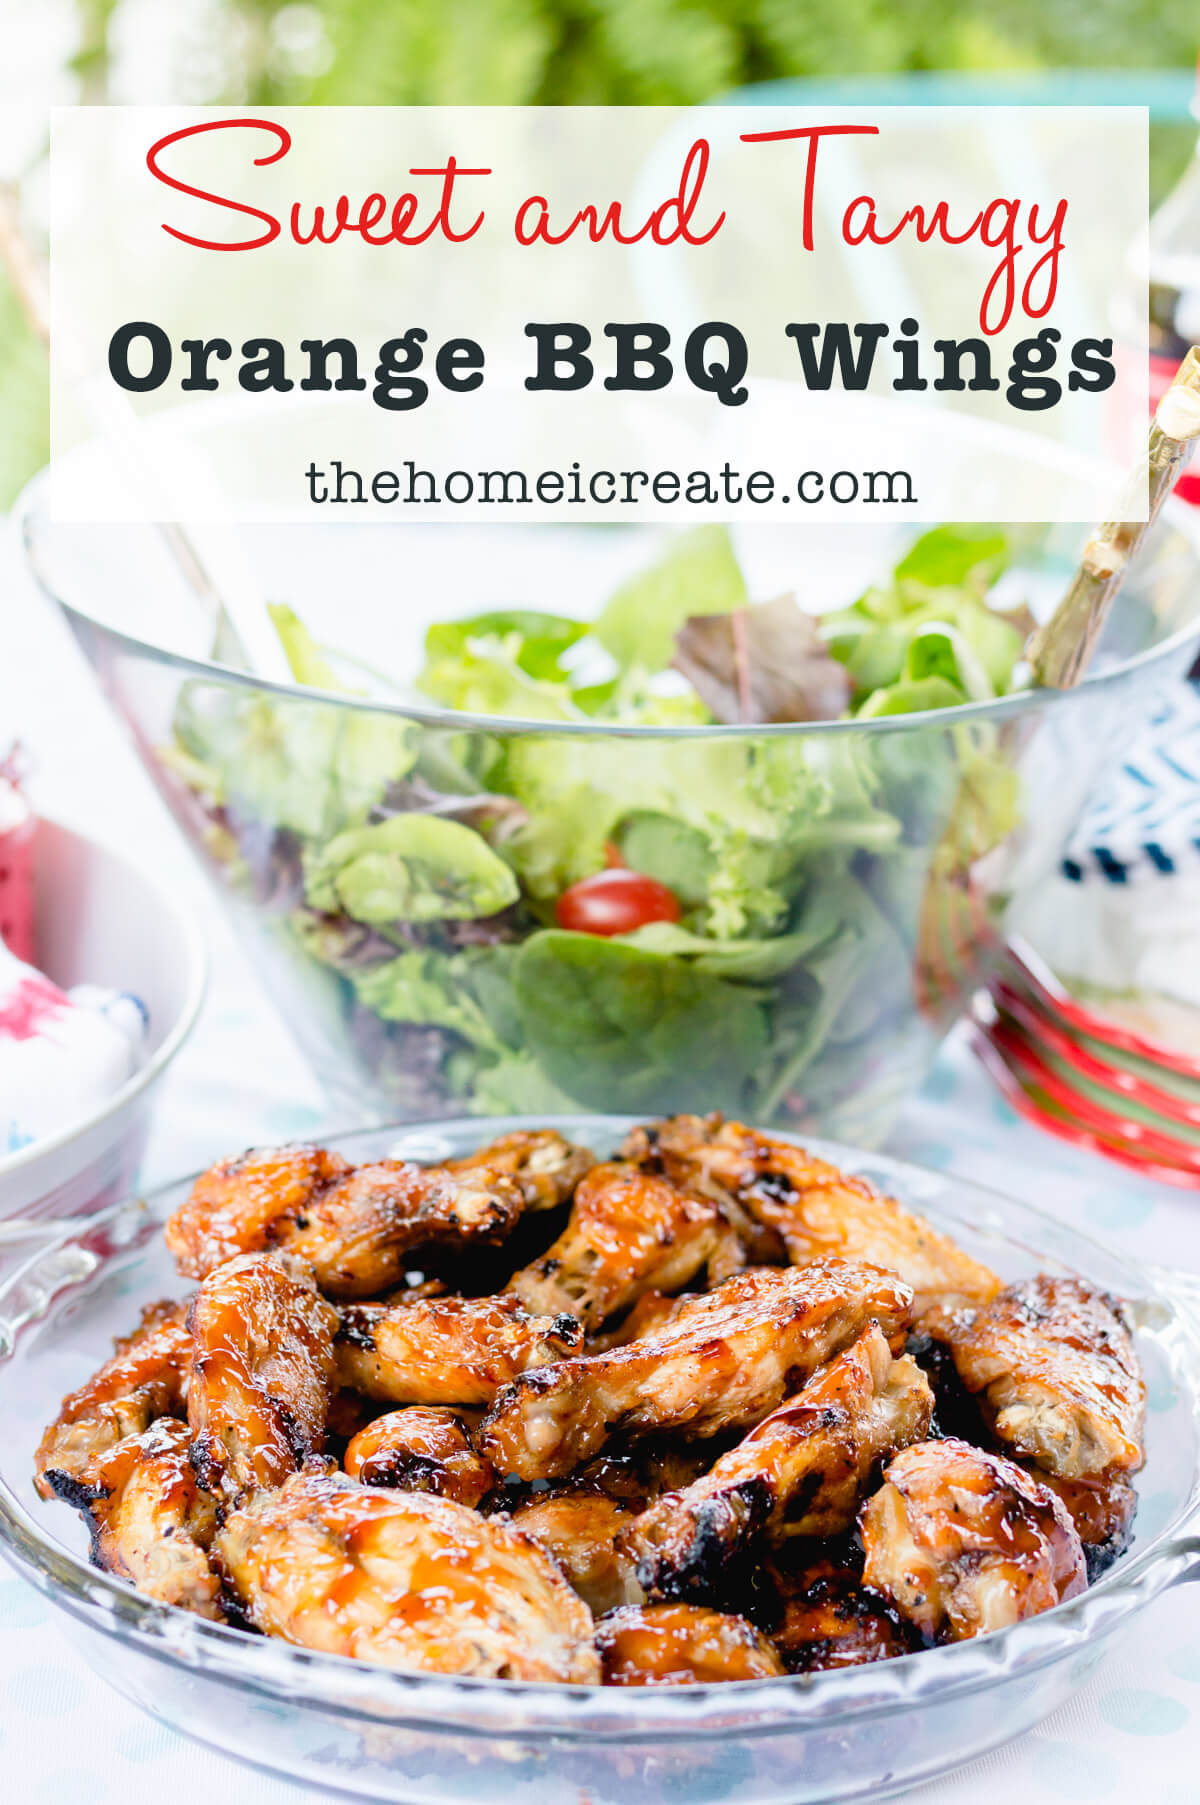 Sweet and Tangy Orange BBQ Chicken Wings | thehomeicreate.com